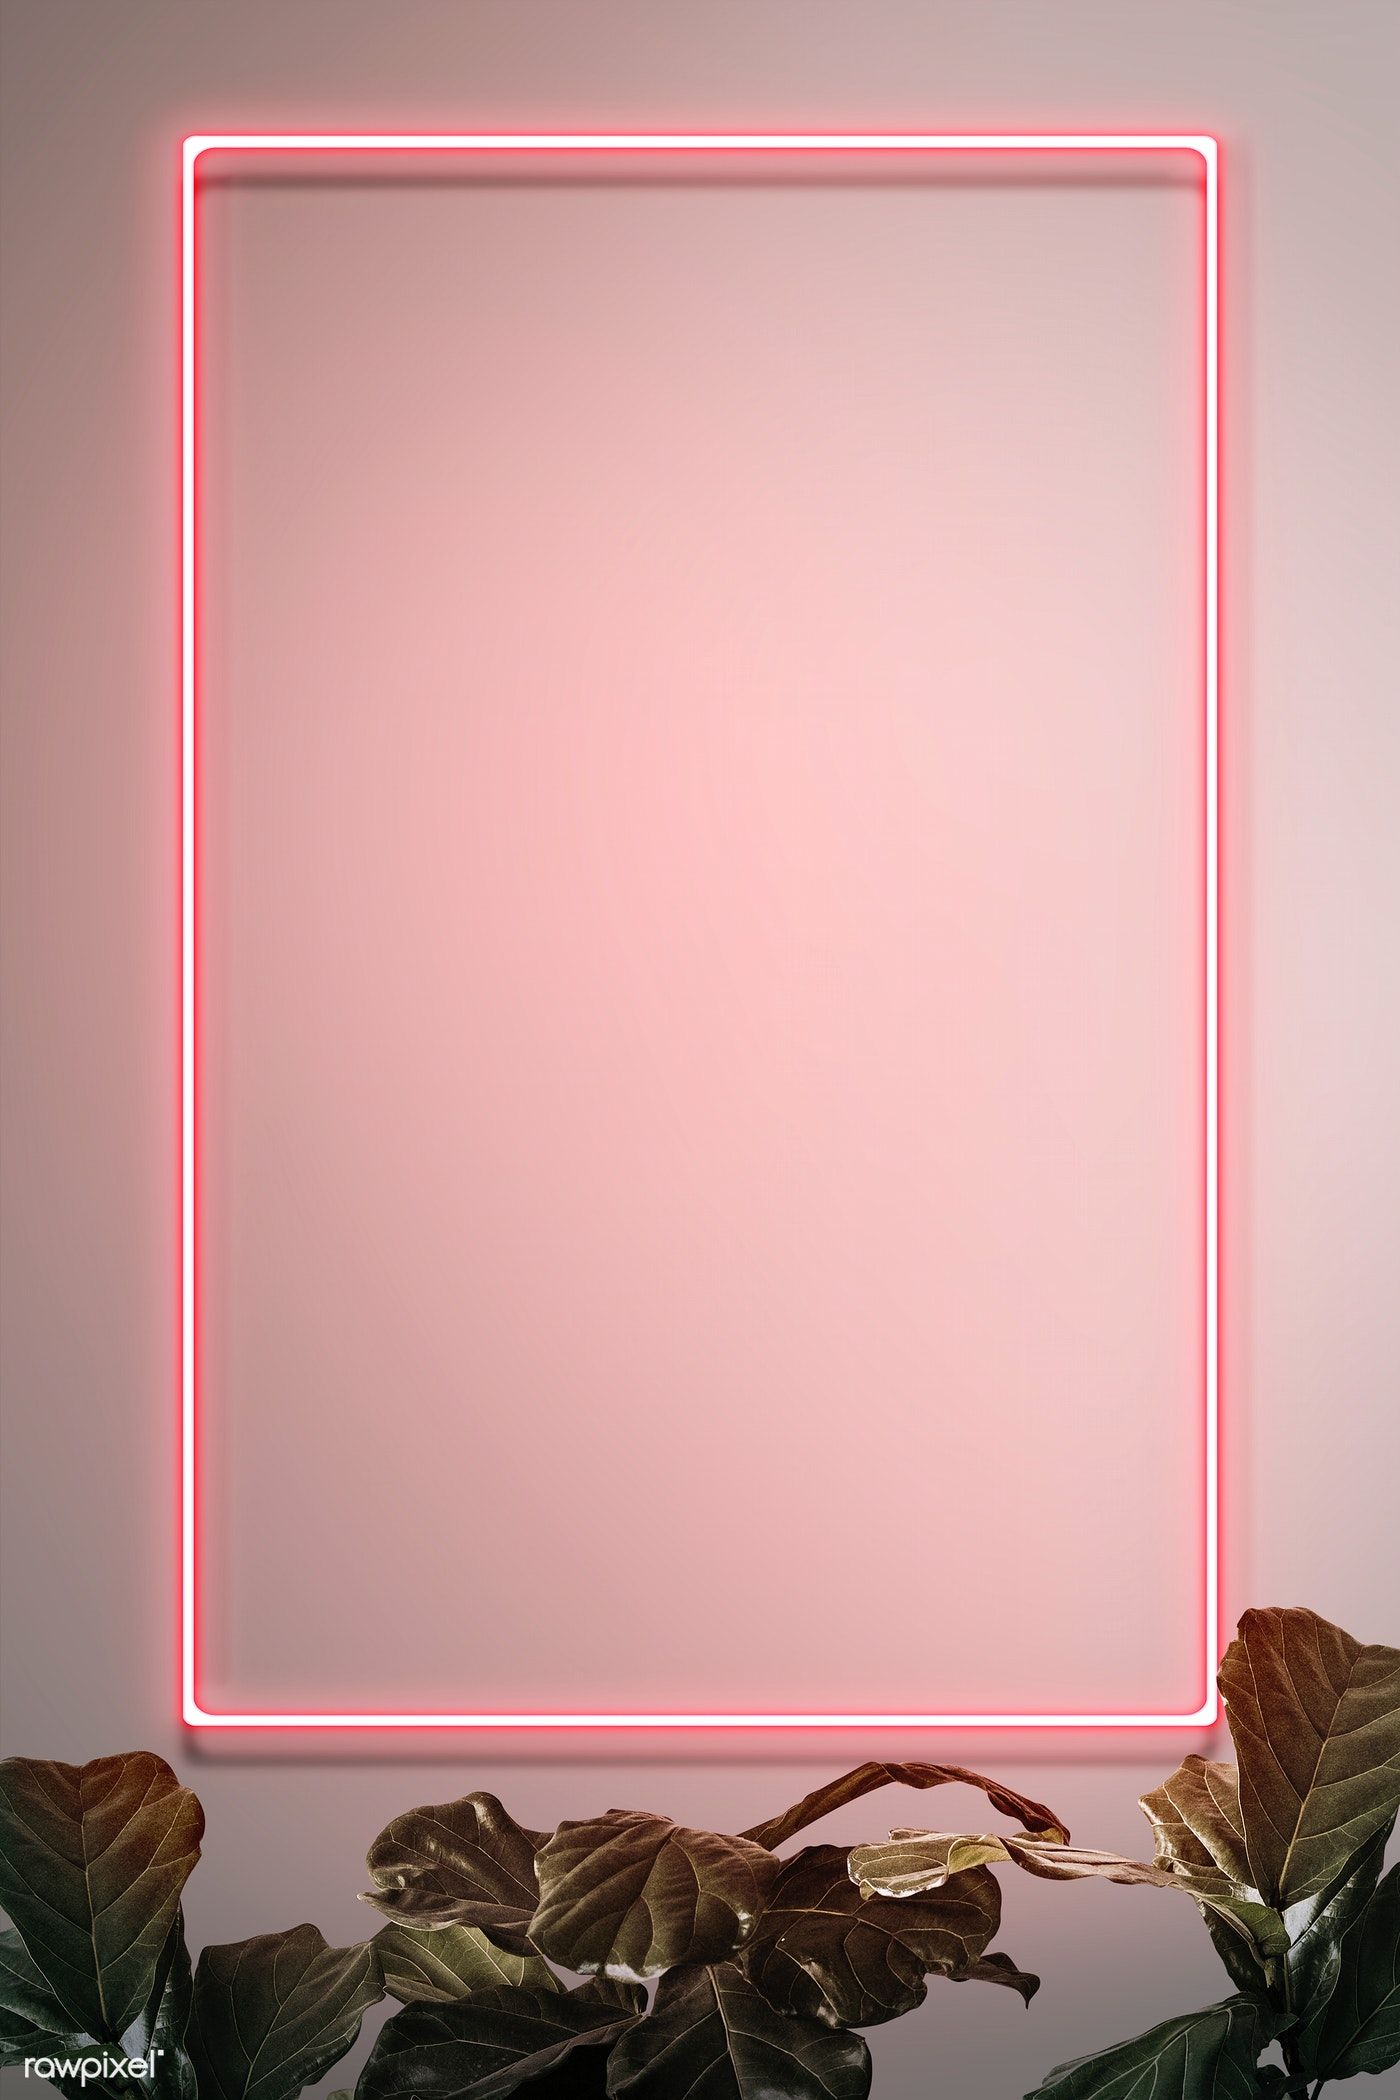 Download premium illustration of Pink neon frame on a wall